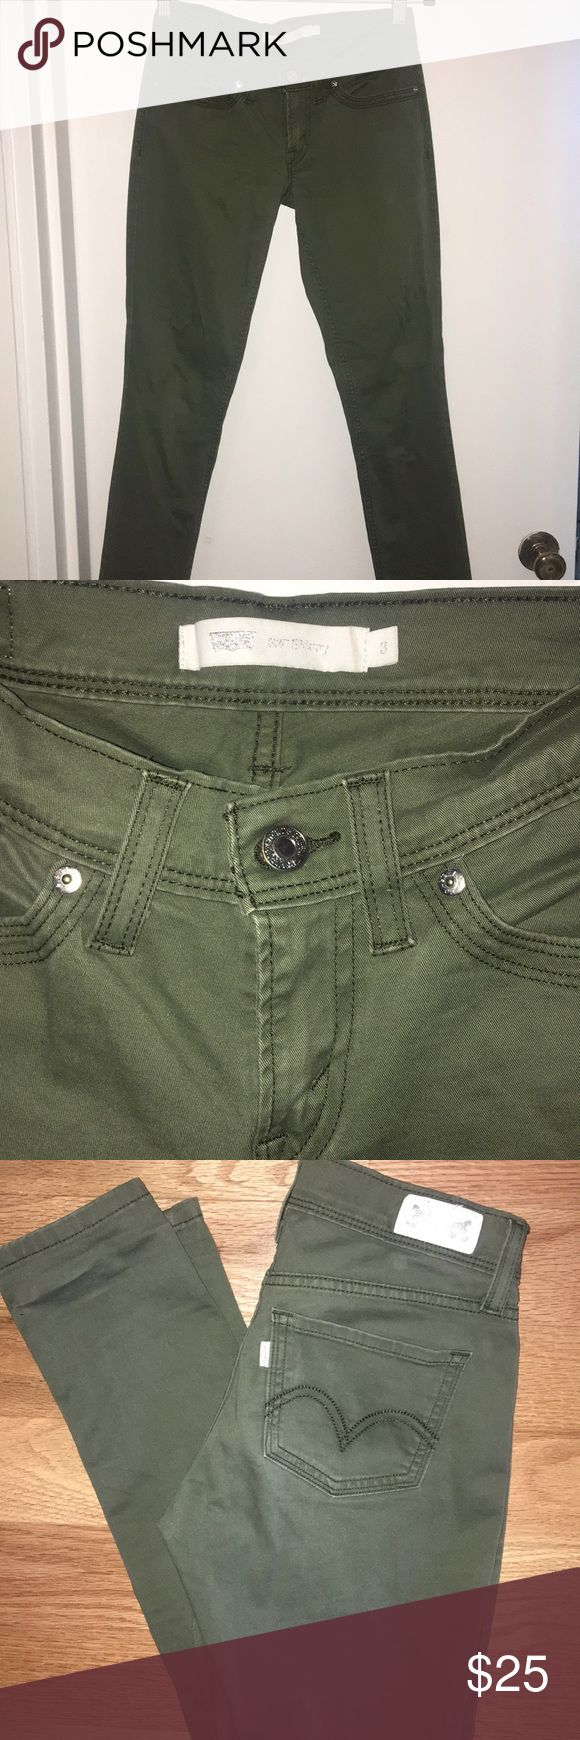 Women's Levi Skinny Jeans 524 Women's Levi Skinny Jeans 524 Size 3 Jeans style 524. Color is close to olive.  Worn a few times in excellent condition. Price is negotiable, make an offer! Levi's Jeans Skinny